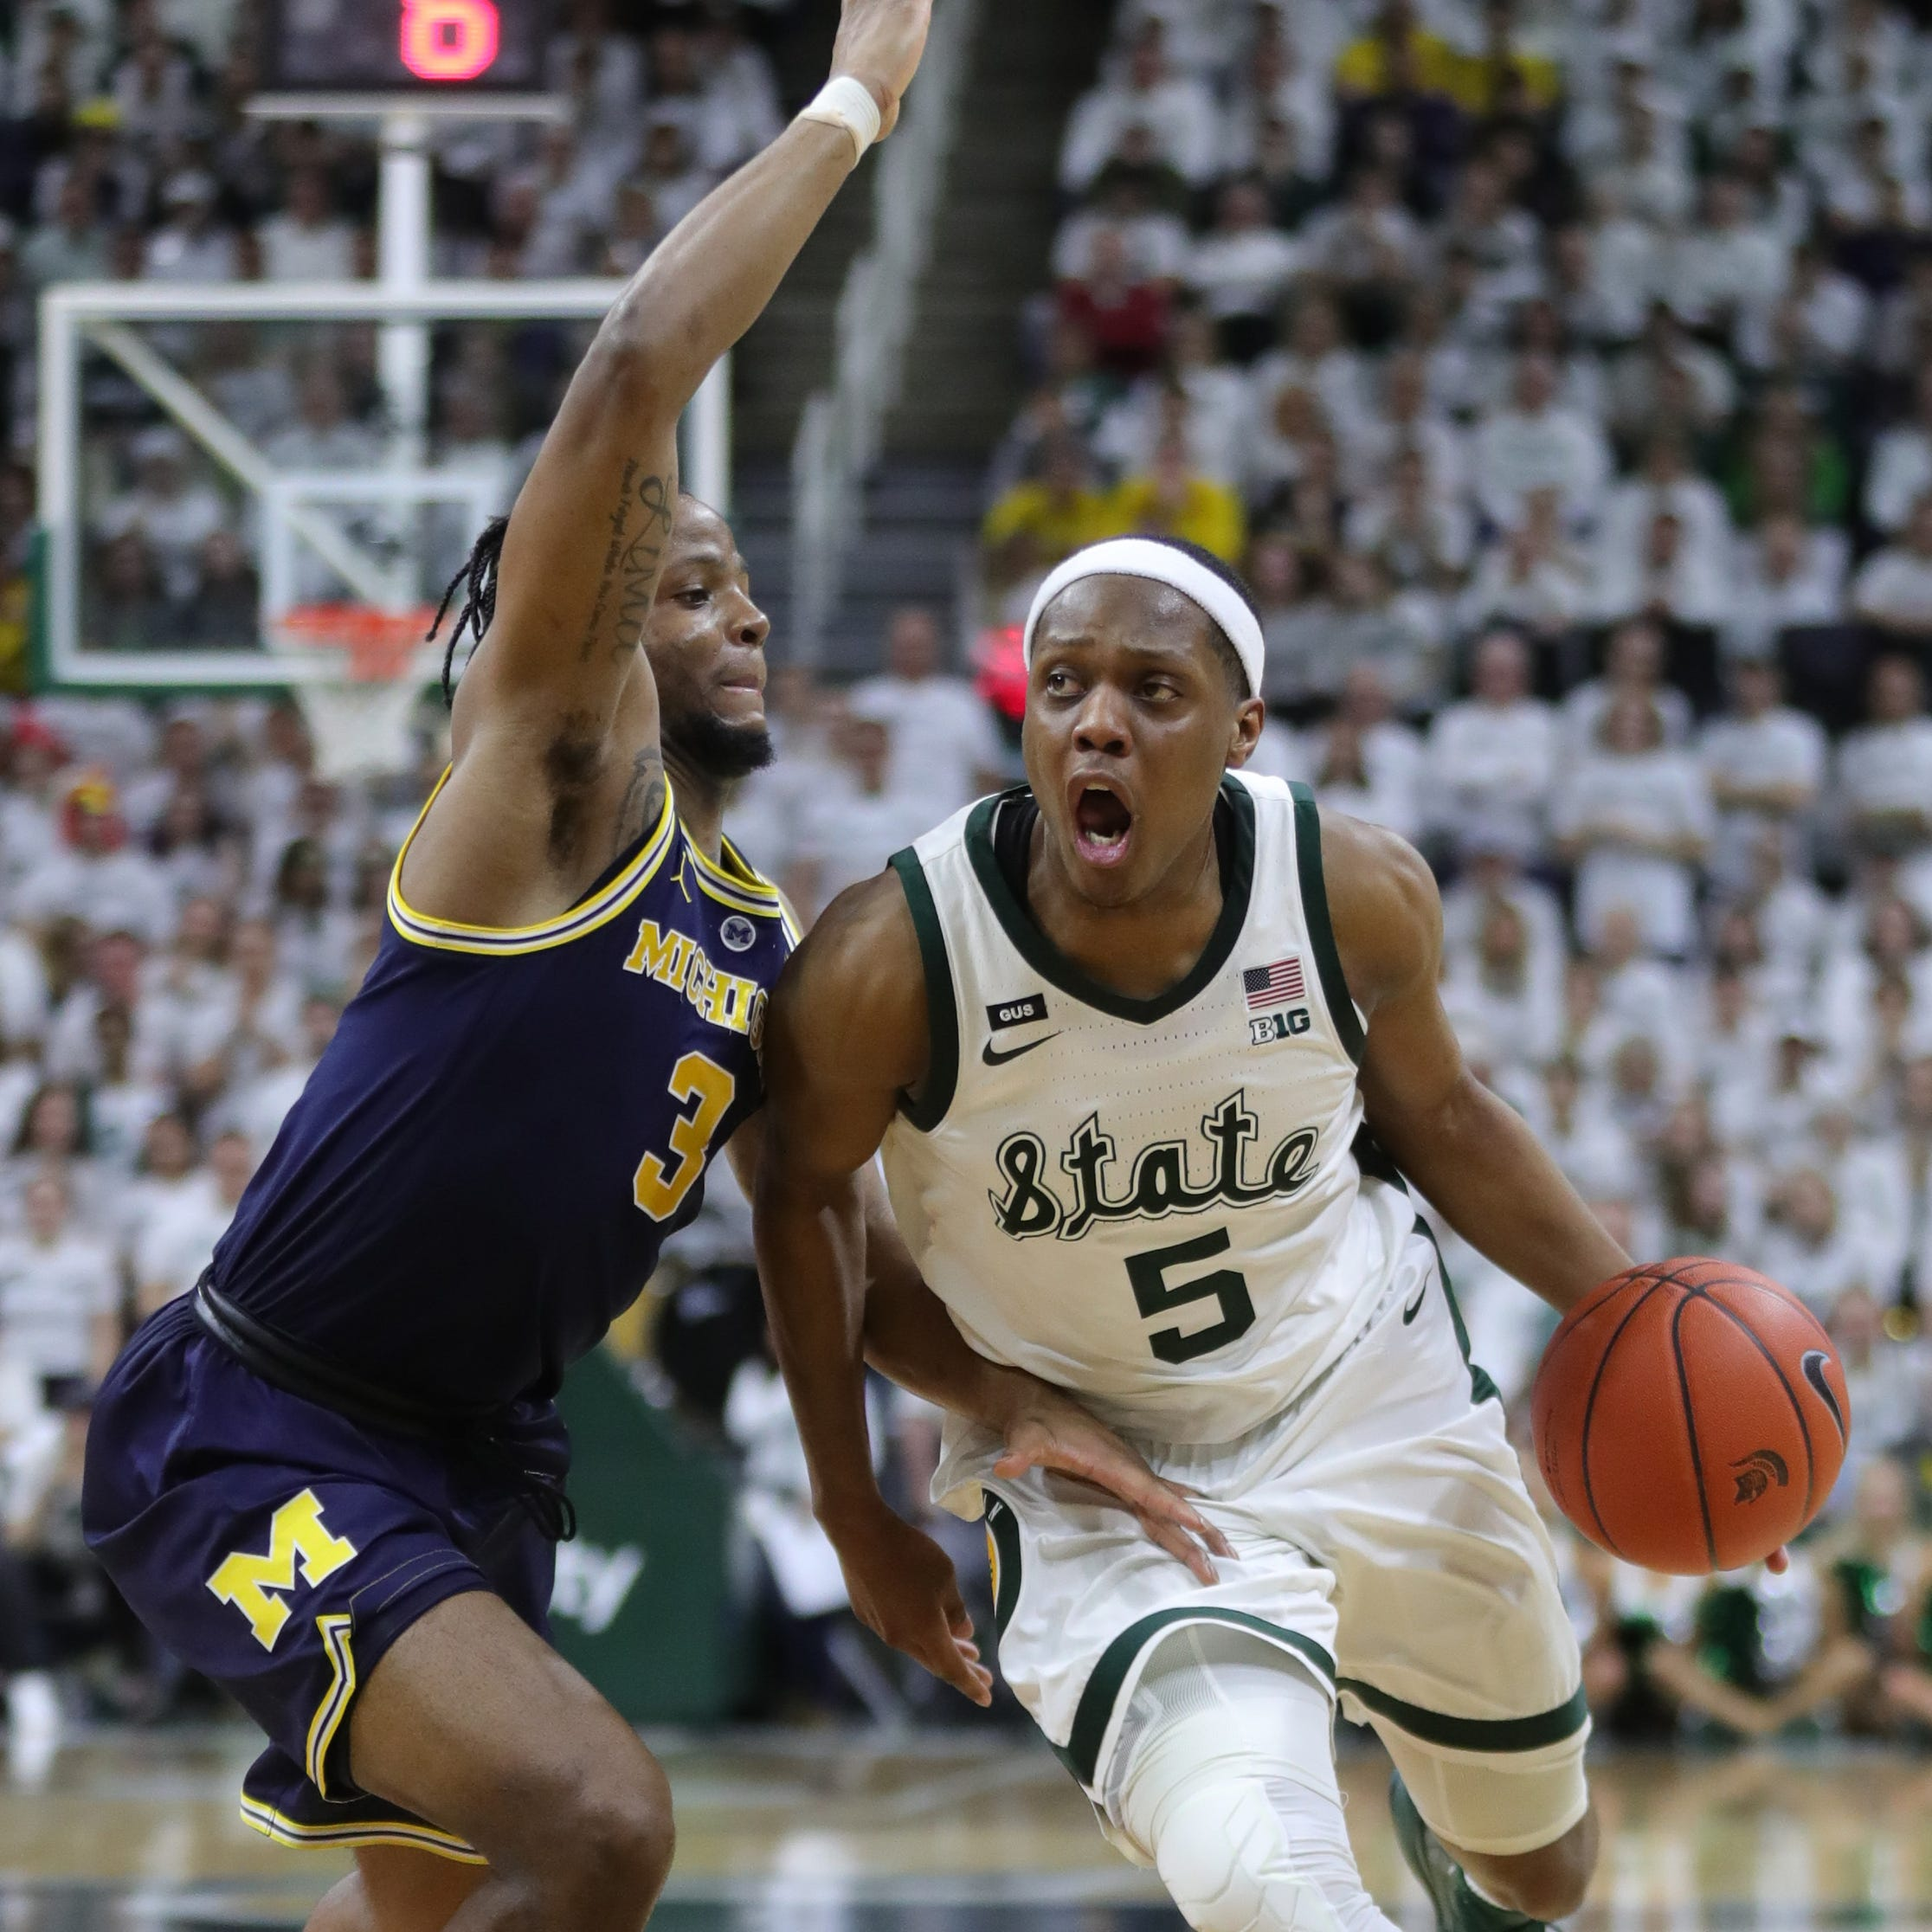 Michigan State, Michigan basketball both set up to make deep 2020 run